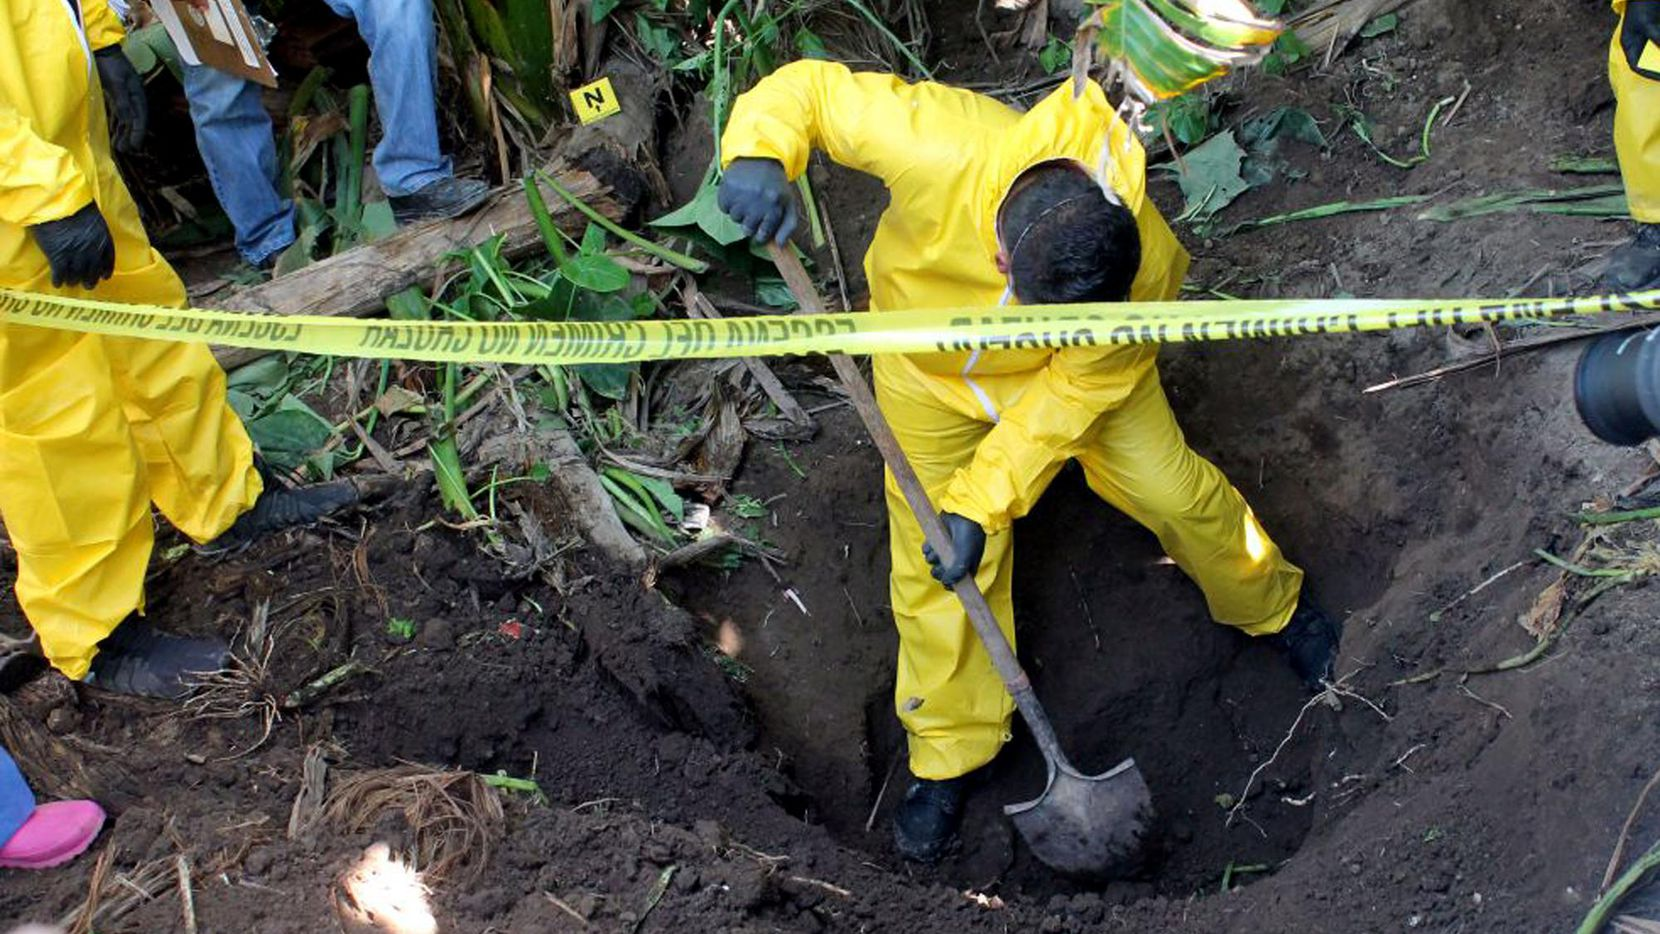 Fotografía distribuída por la In this Jan. 15, 2018 photo, released by the General Prosecutor of Nayarit, a man digs up a clandestine grave in Xalisco, Nayarit state, Mexico. Sniffer dogs led authorities to the grisly discovery of three clandestine graves containing at least 33 bodies in a sugarcane field. Some of the bodies may have been hacked up before being tossed into the pits, and authorities believe they were probably involved in the drug trade. (General Prosecutor of Nayarit via AP) (AP/General Prosecutor of Nayarit)